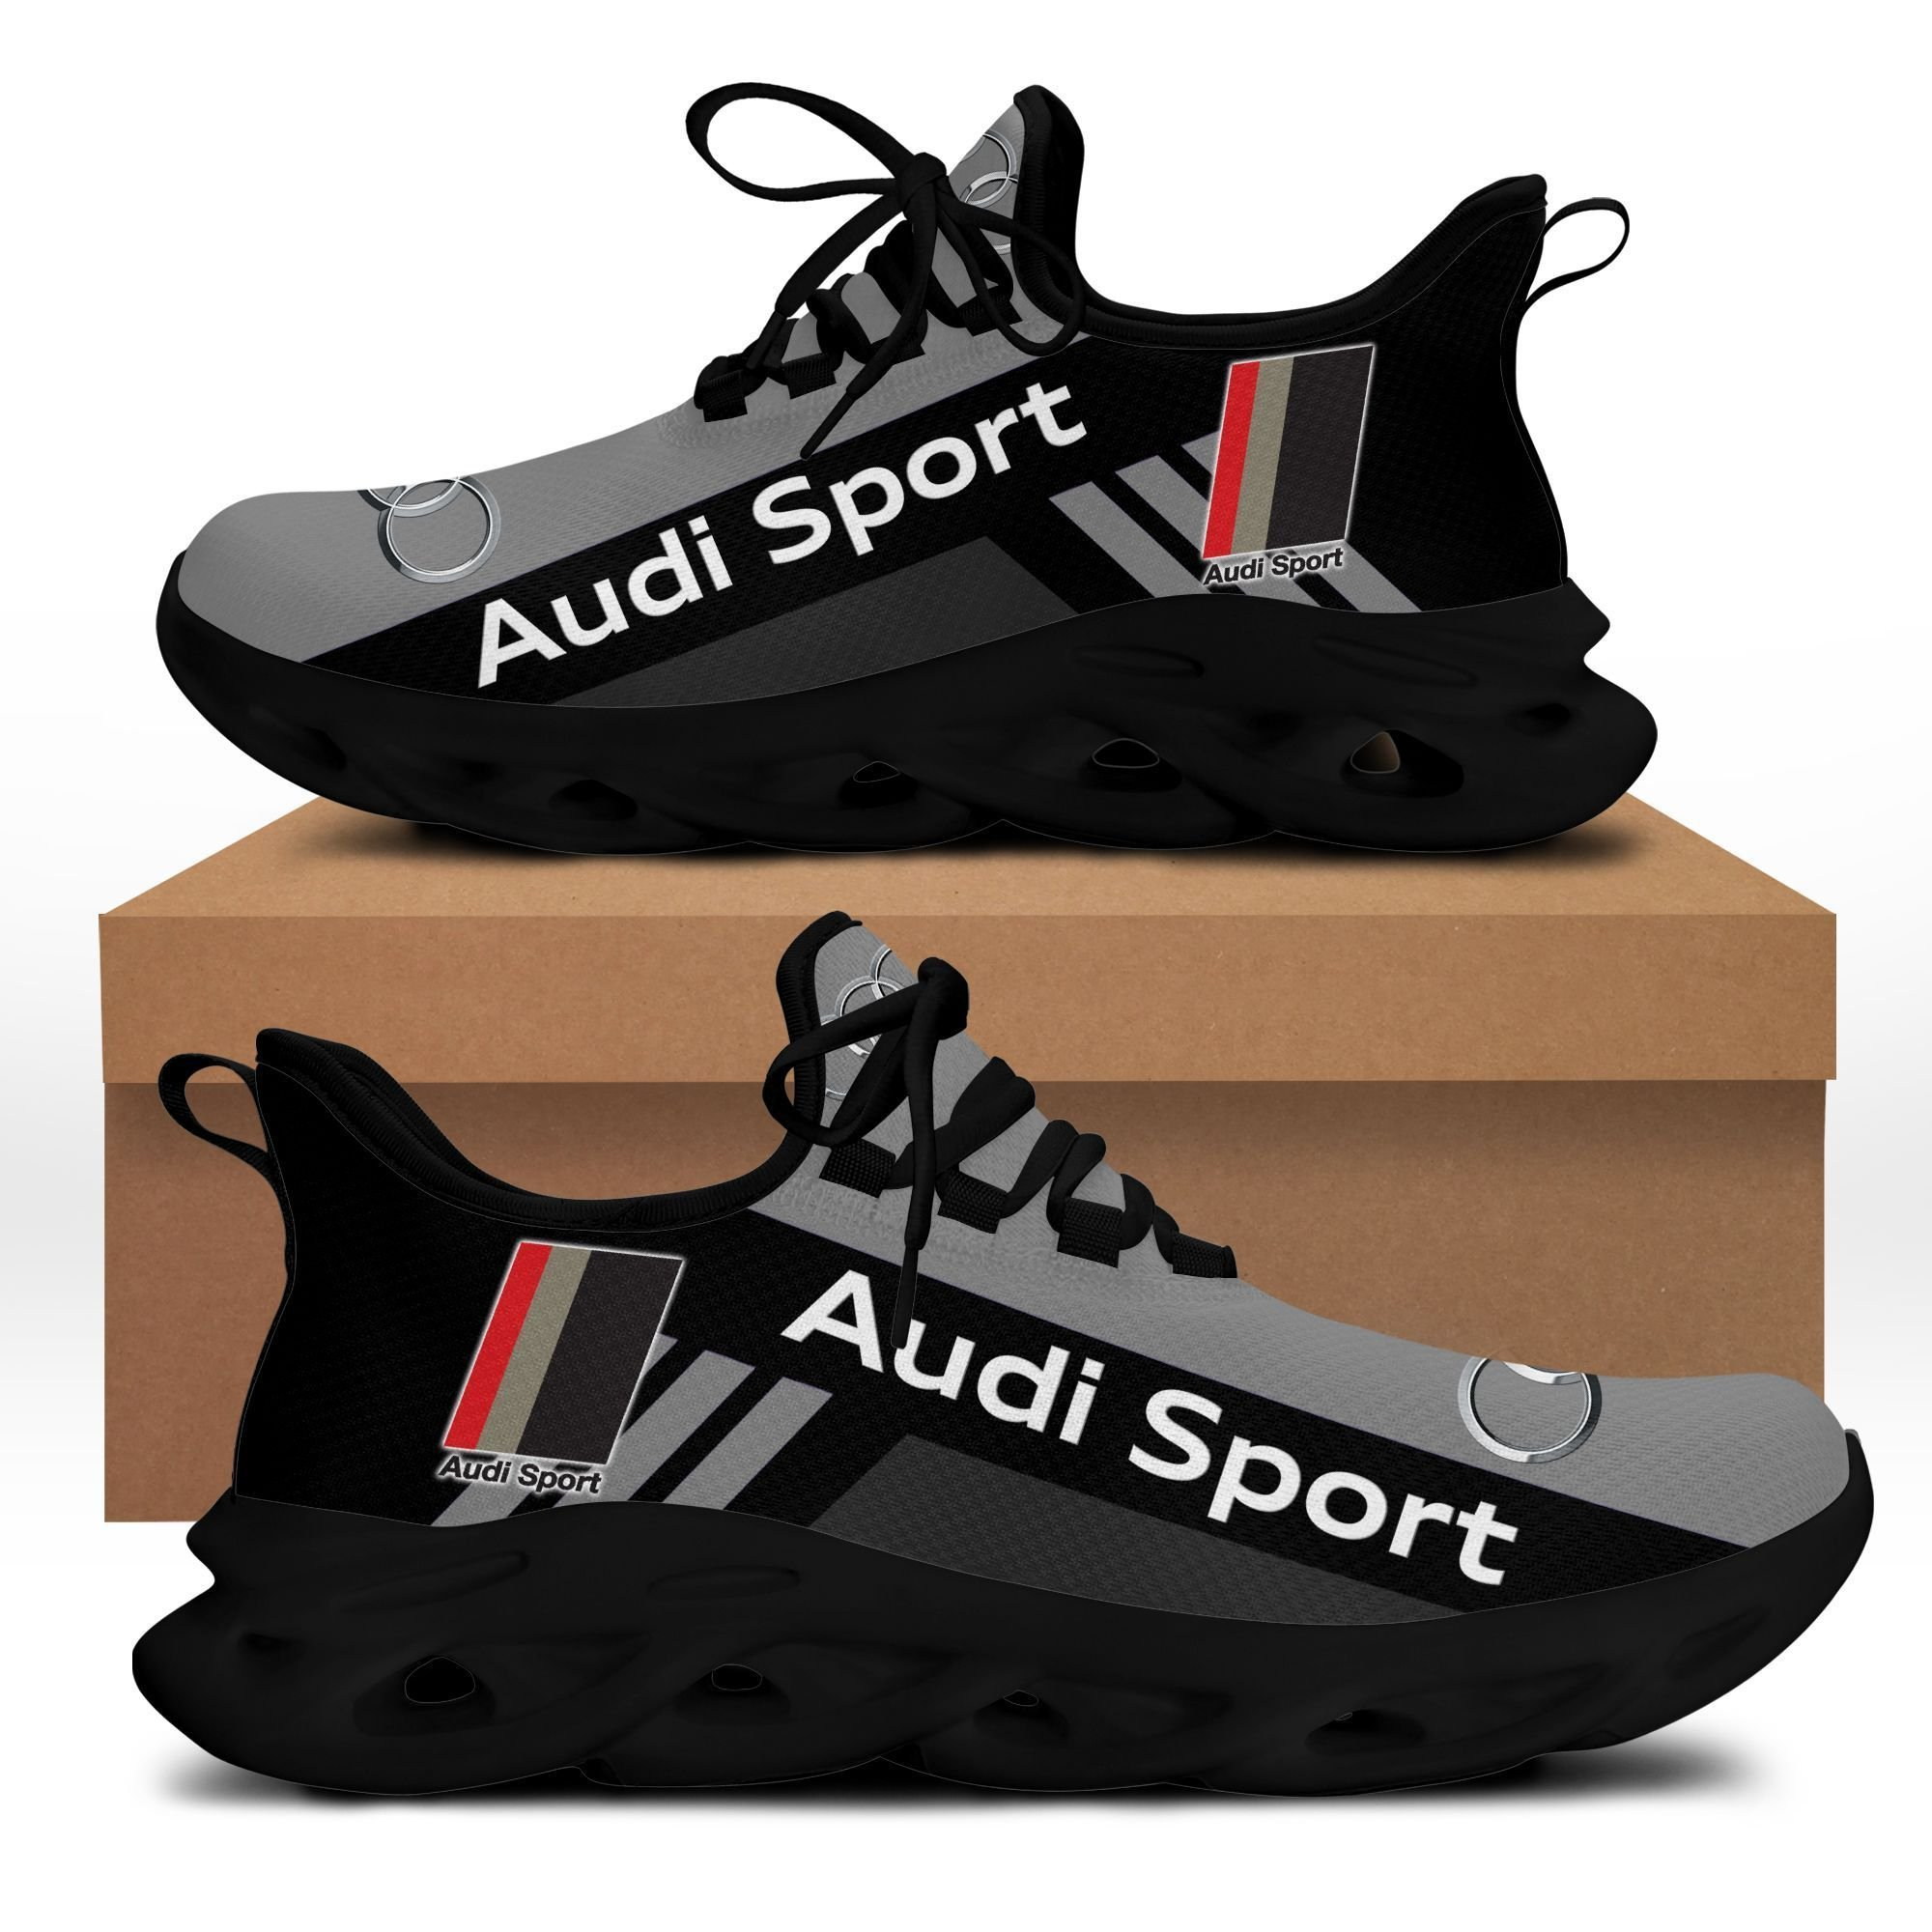 Audi Sport clunky max soul shoes